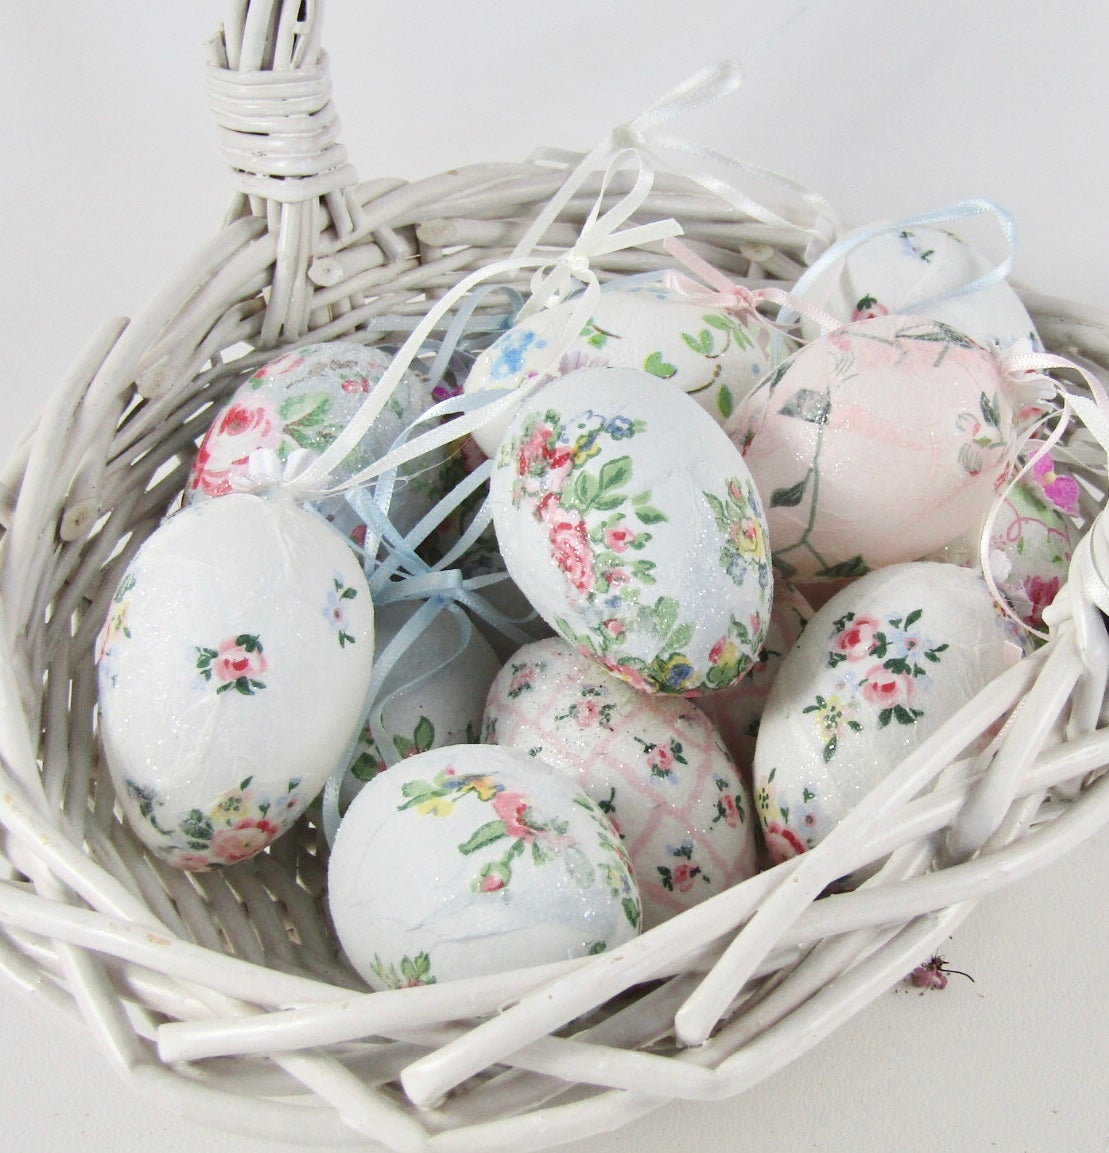 Image of Decoupage glitter eggs